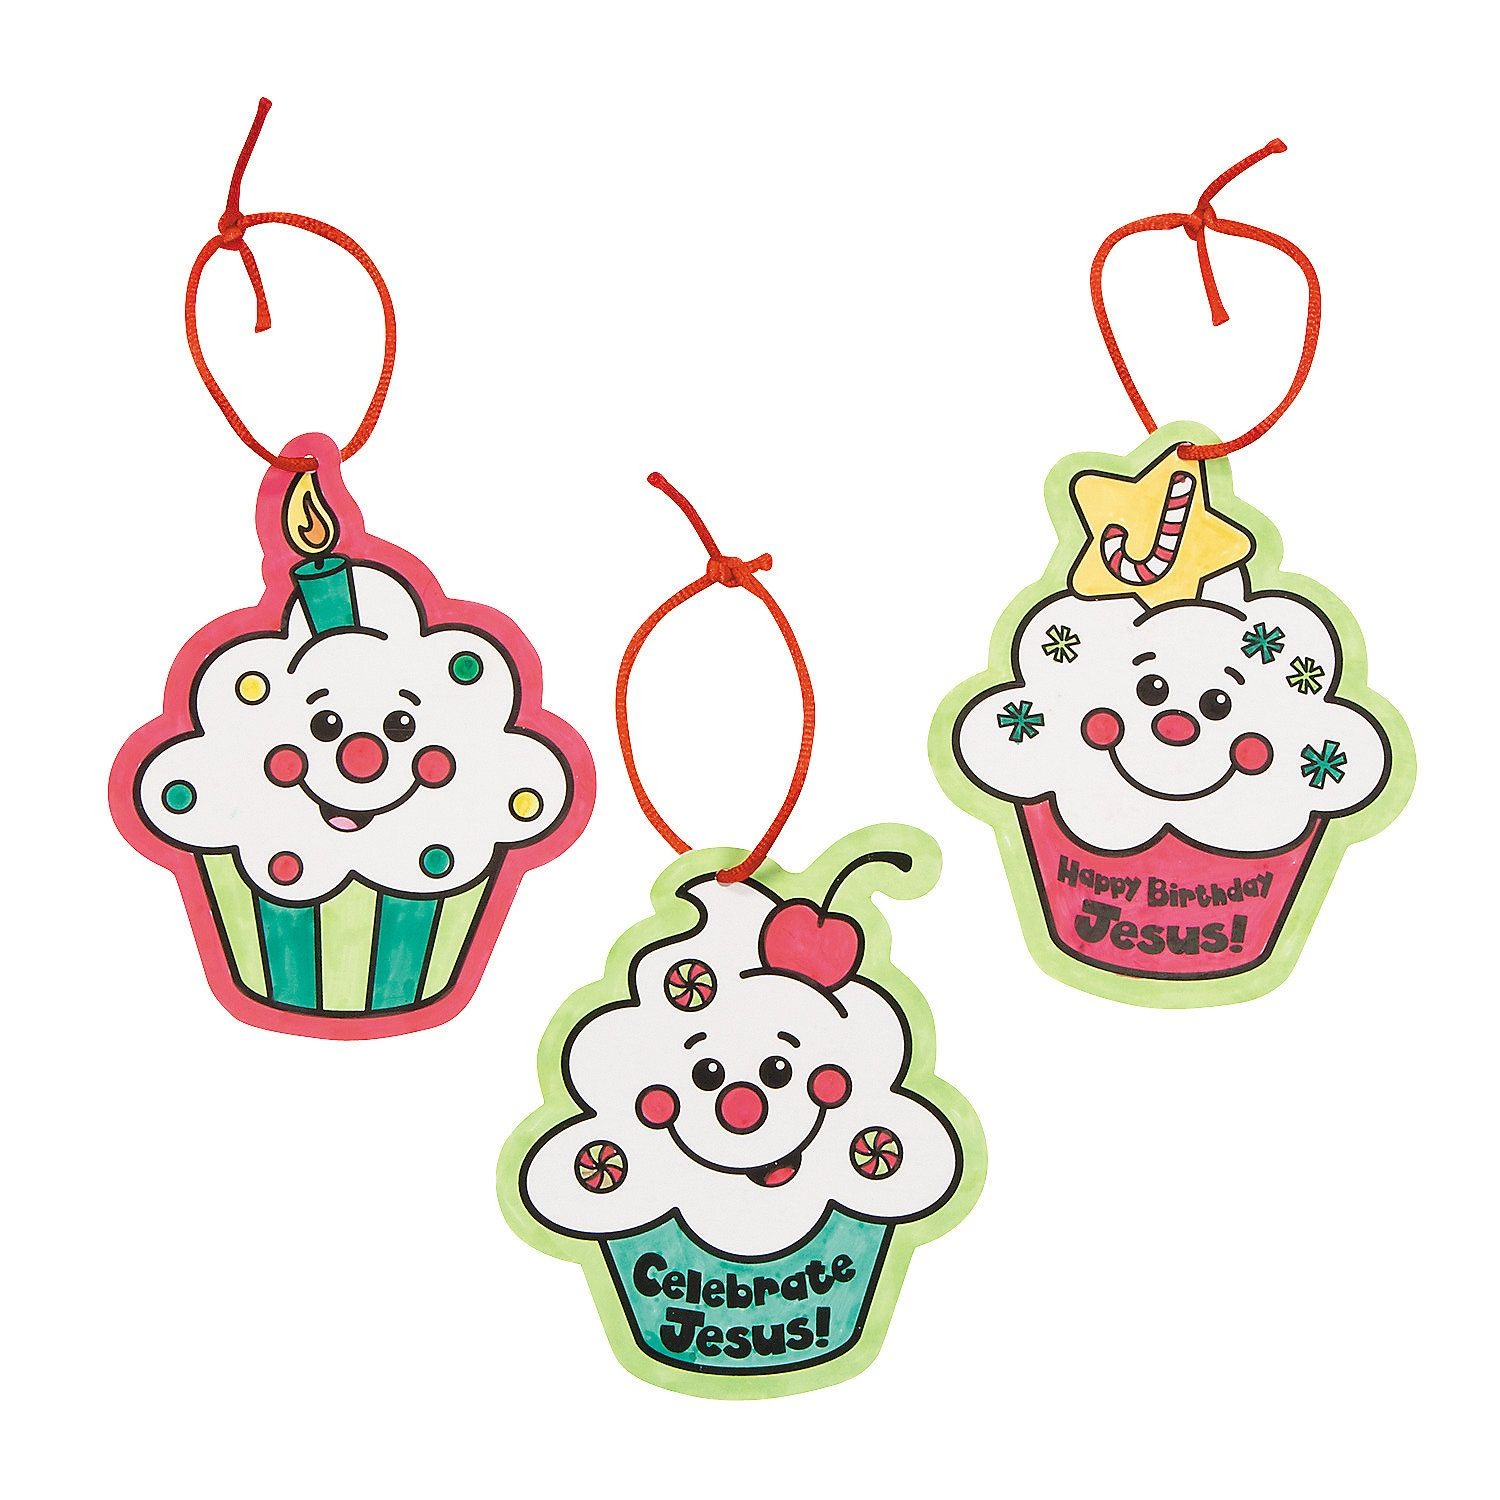 """Color Your Own """"Happy Birthday Jesus!"""" Cupcake Ornaments ..."""